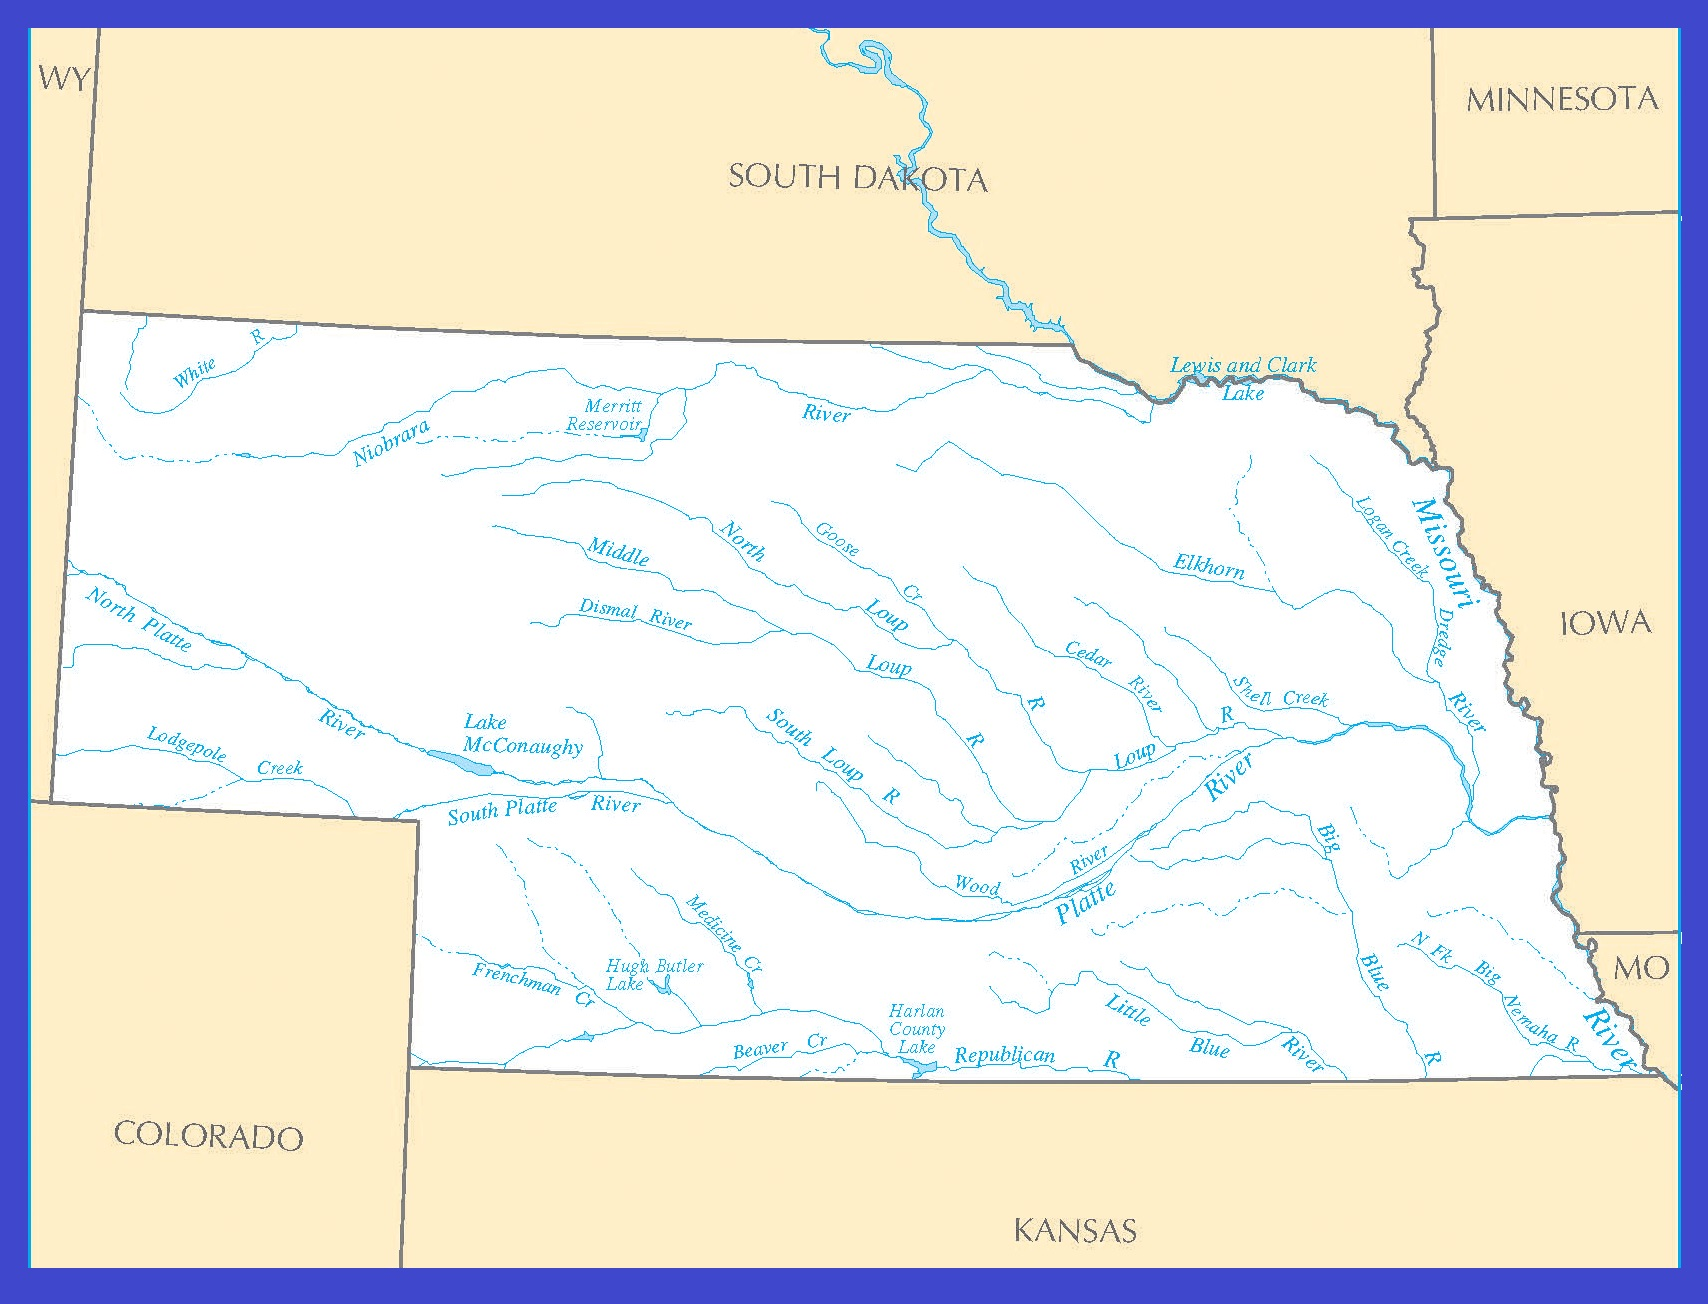 Nebraska Rivers Map | Large Printable High Resolution and Standard Map